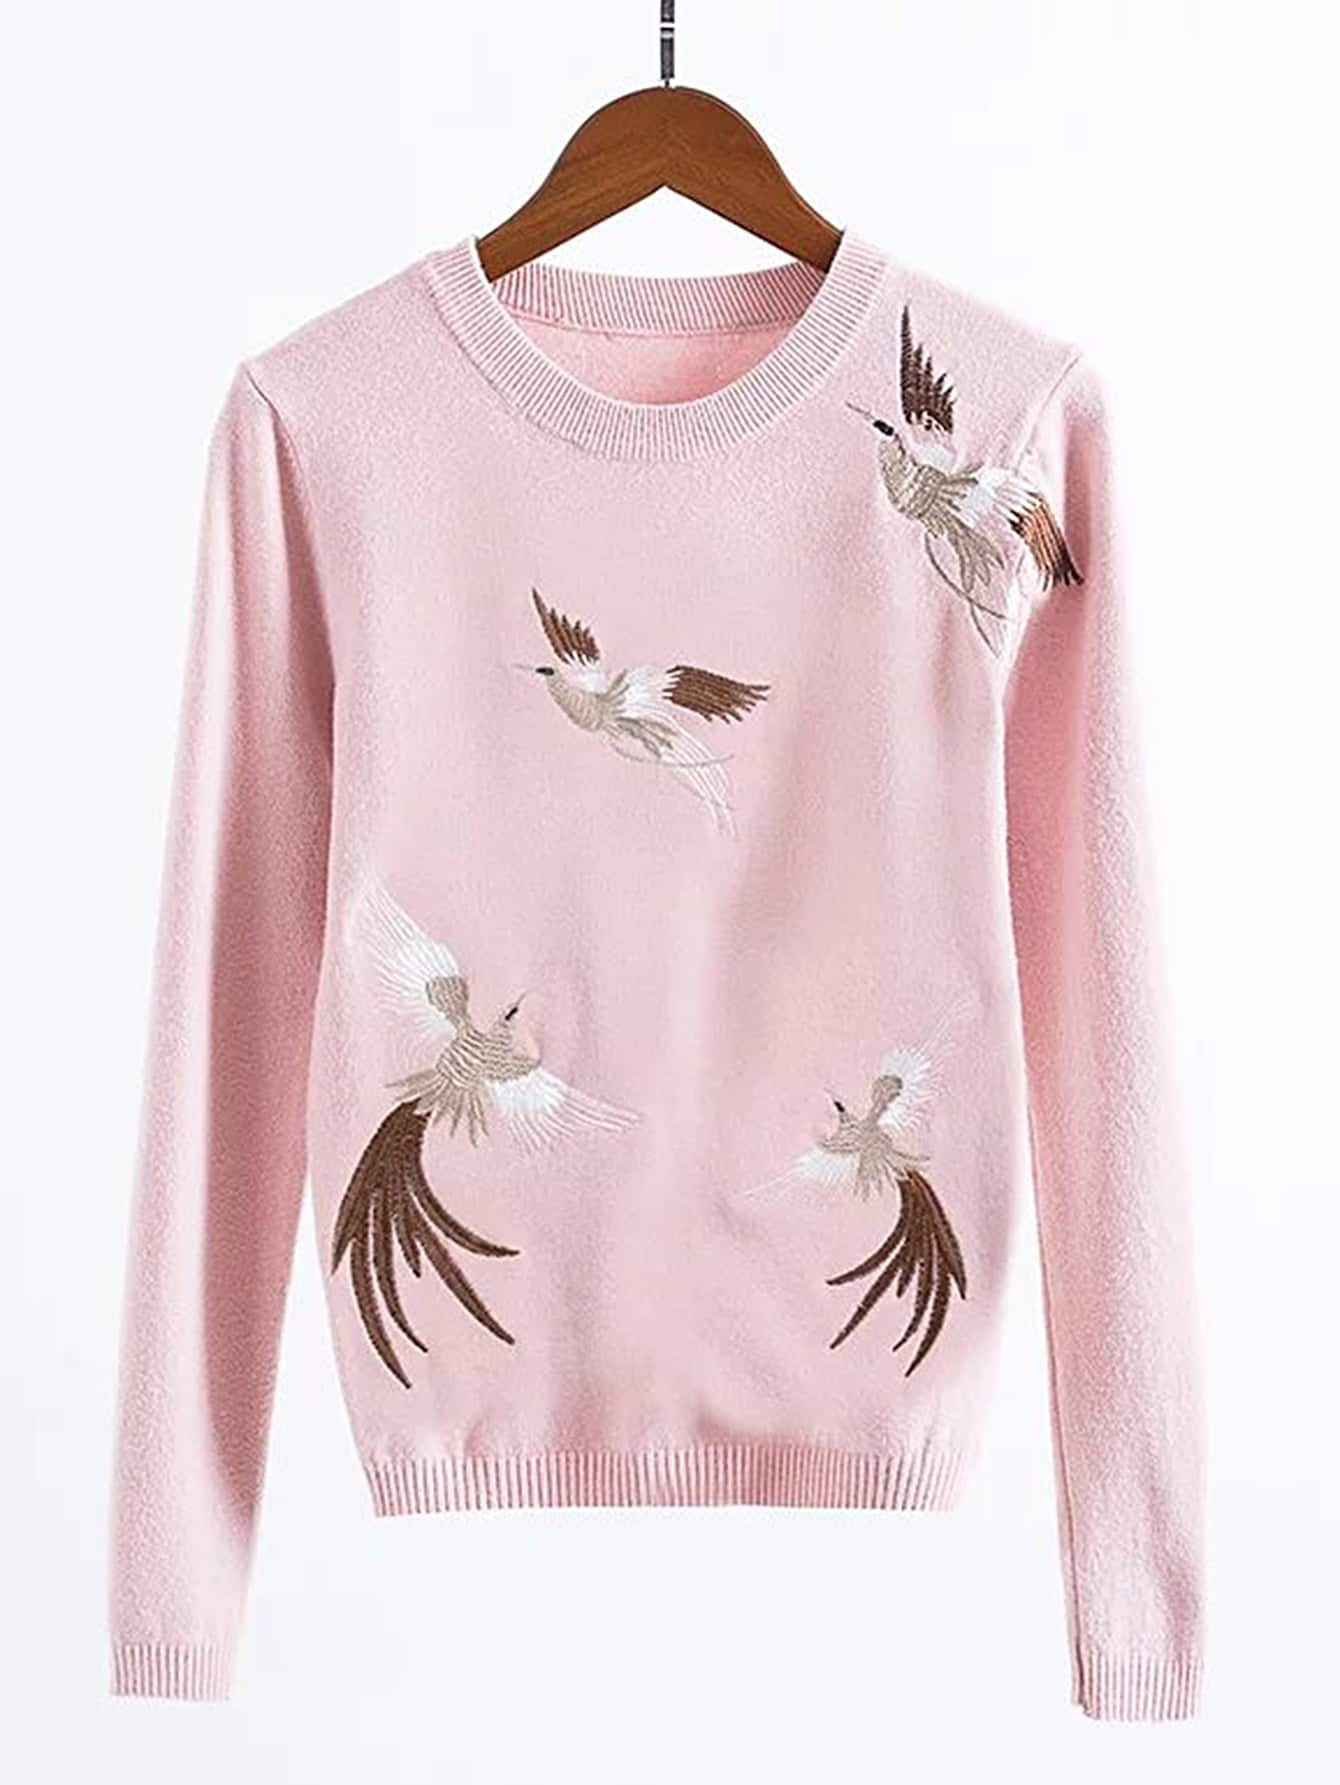 Cranes Embroidery Ribbed Trim Knitwear sweater170718201